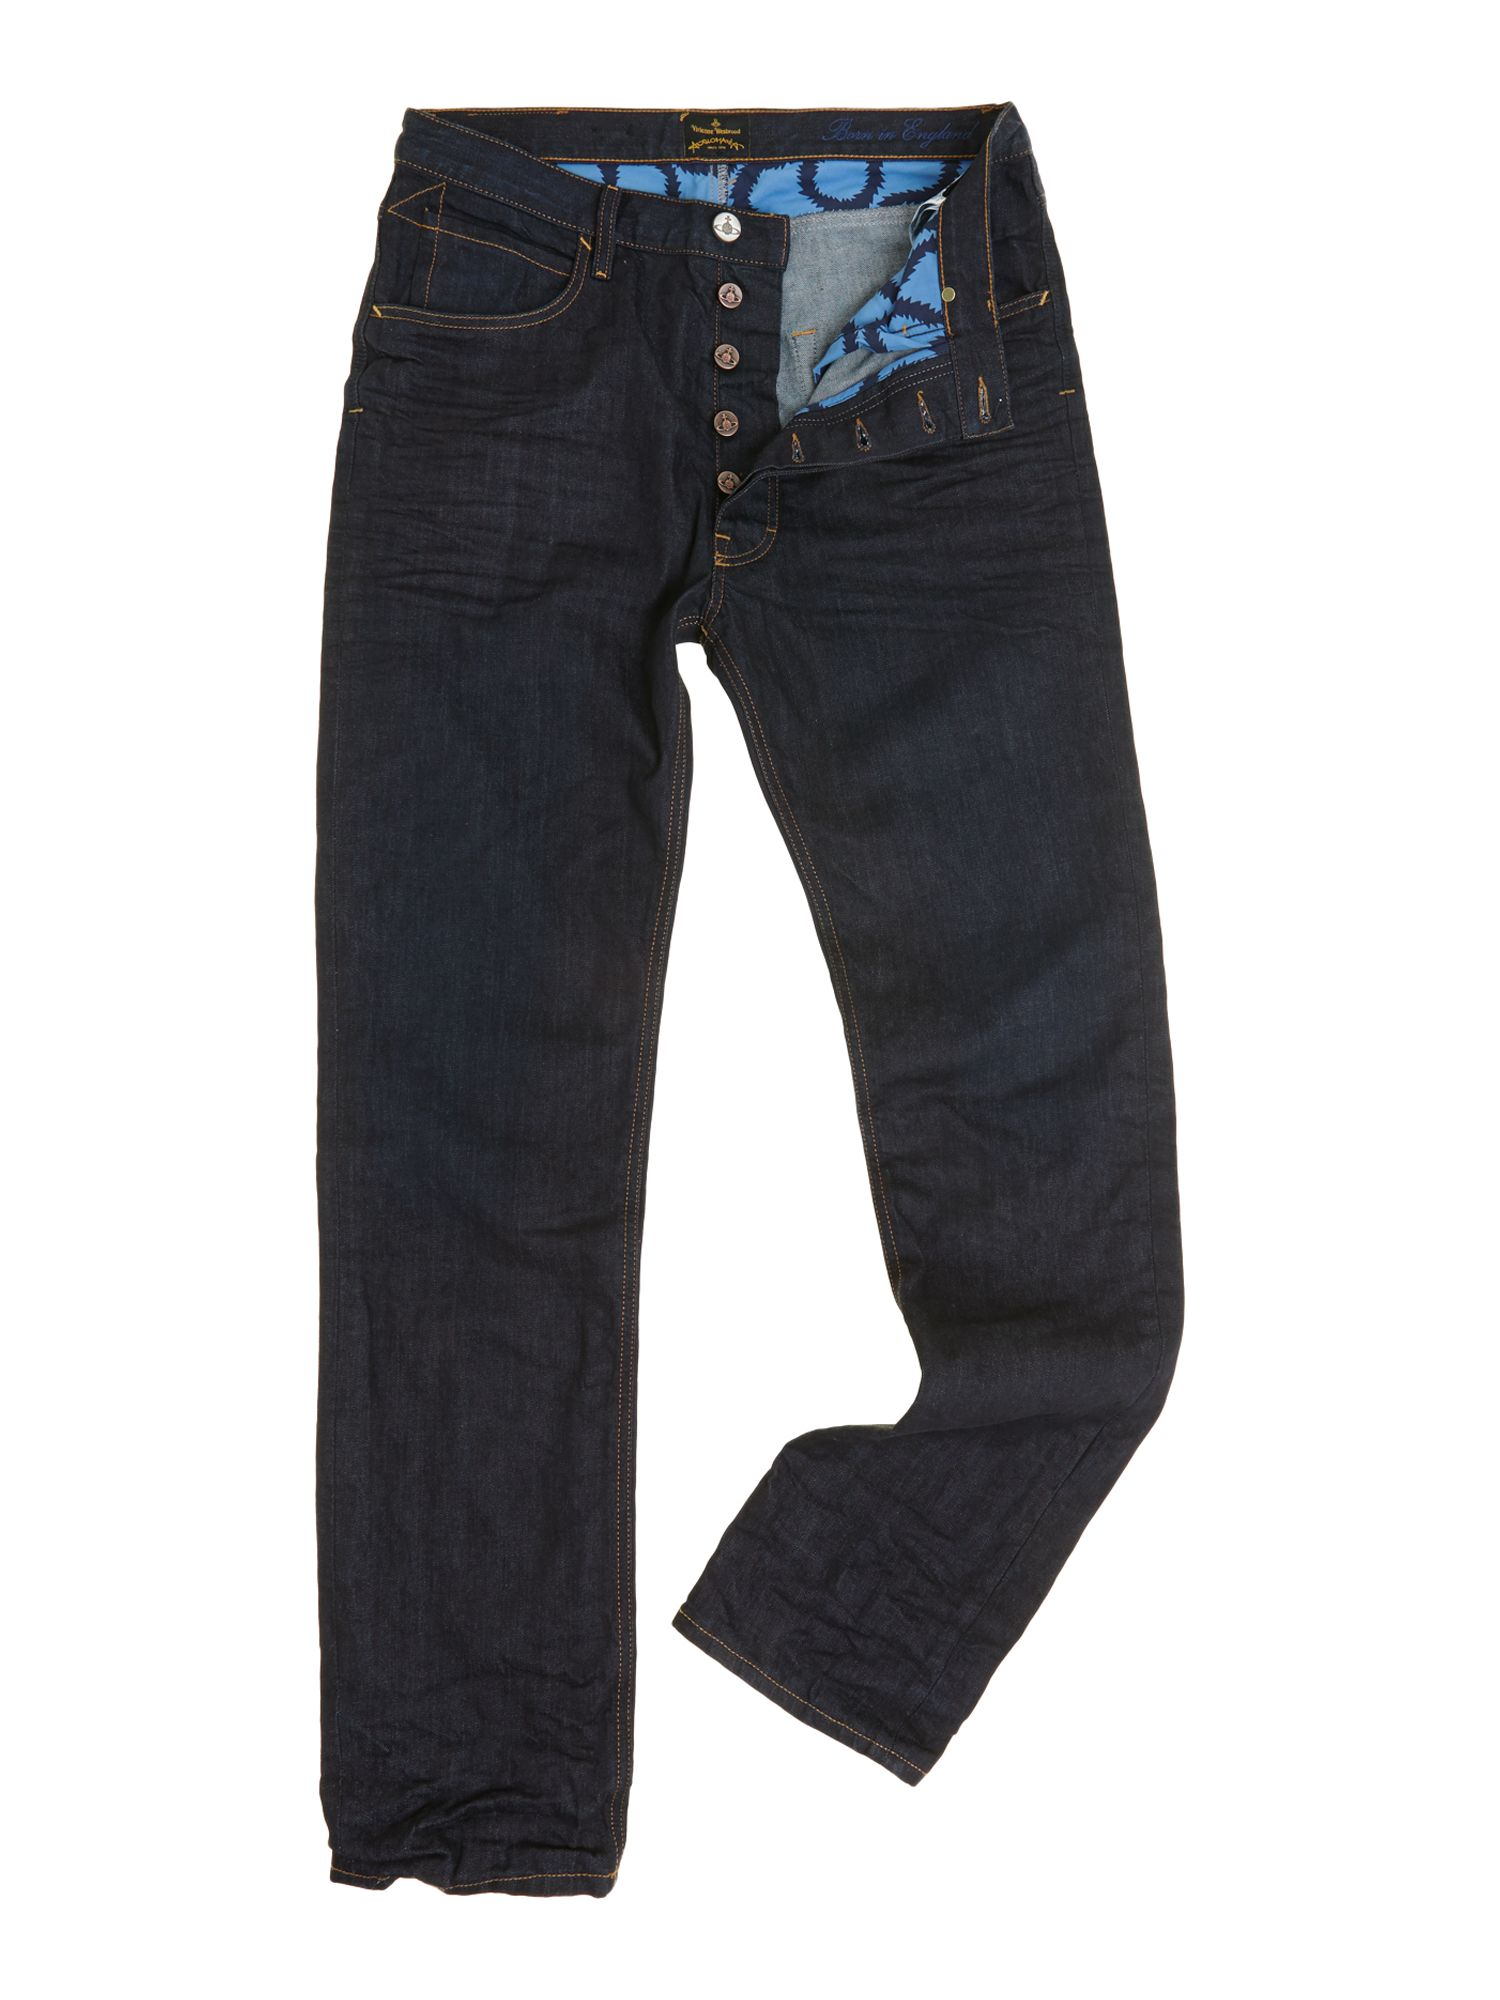 Low crotch tapered jeans